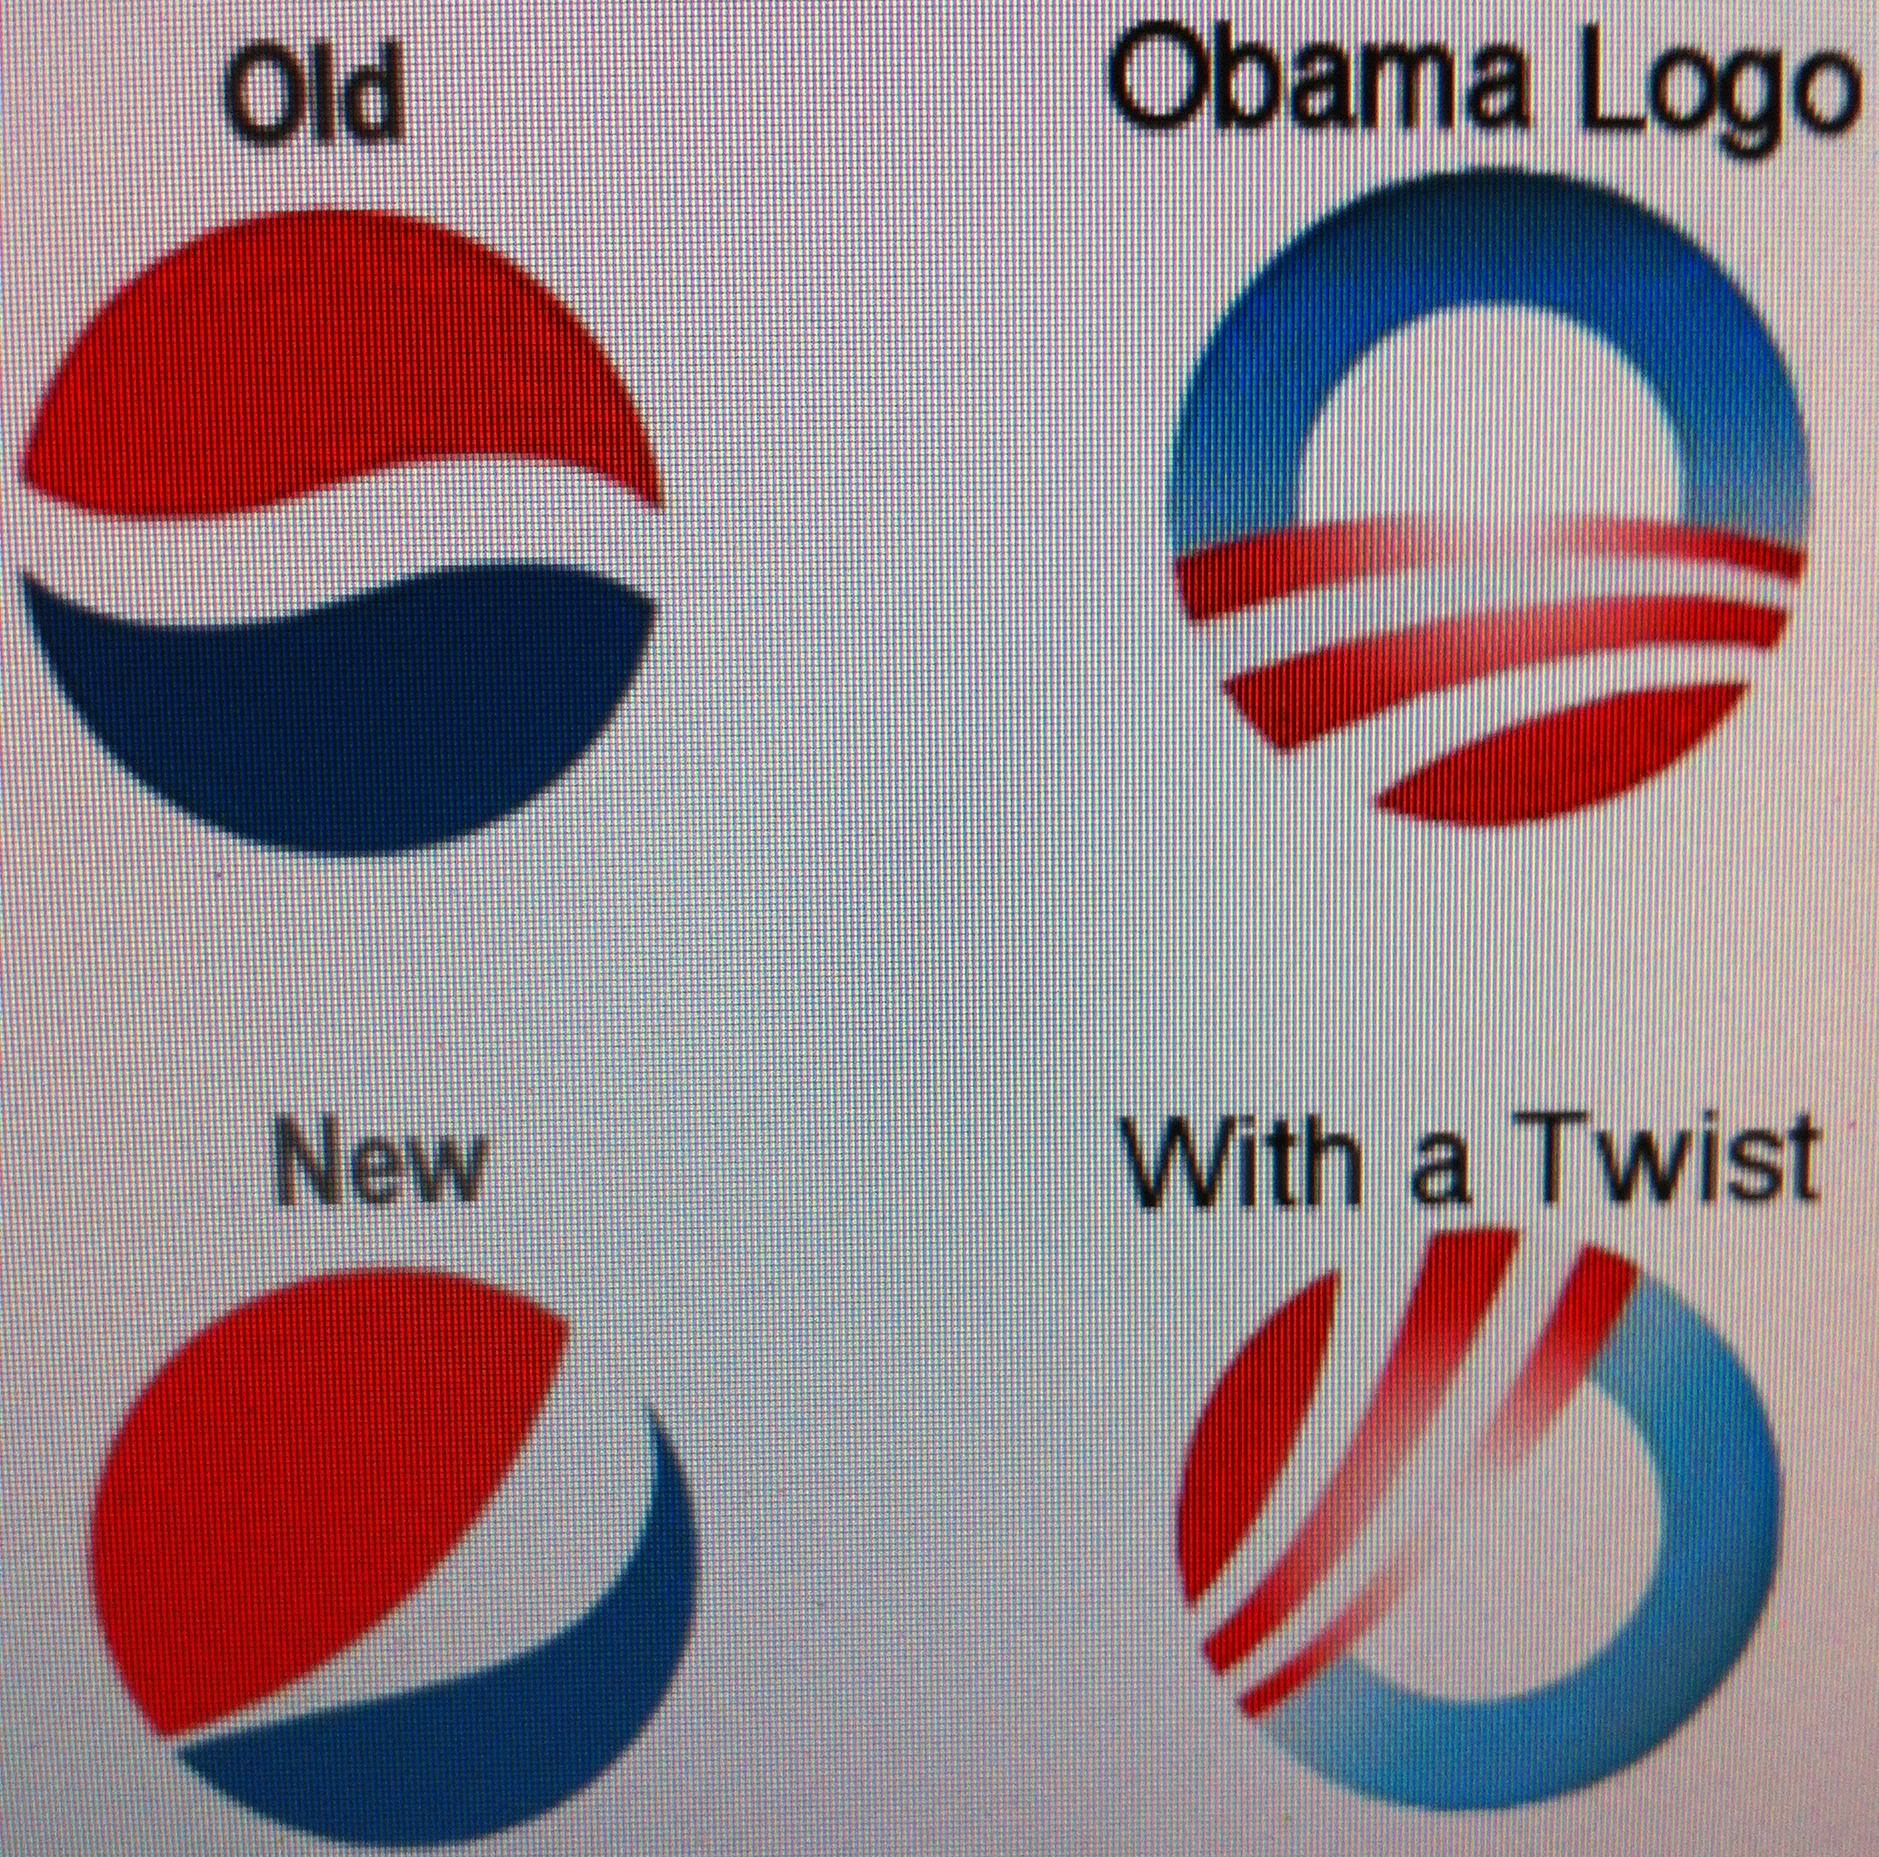 Pepsi Obama Logos Conspiracy Or Coincidence Once For All